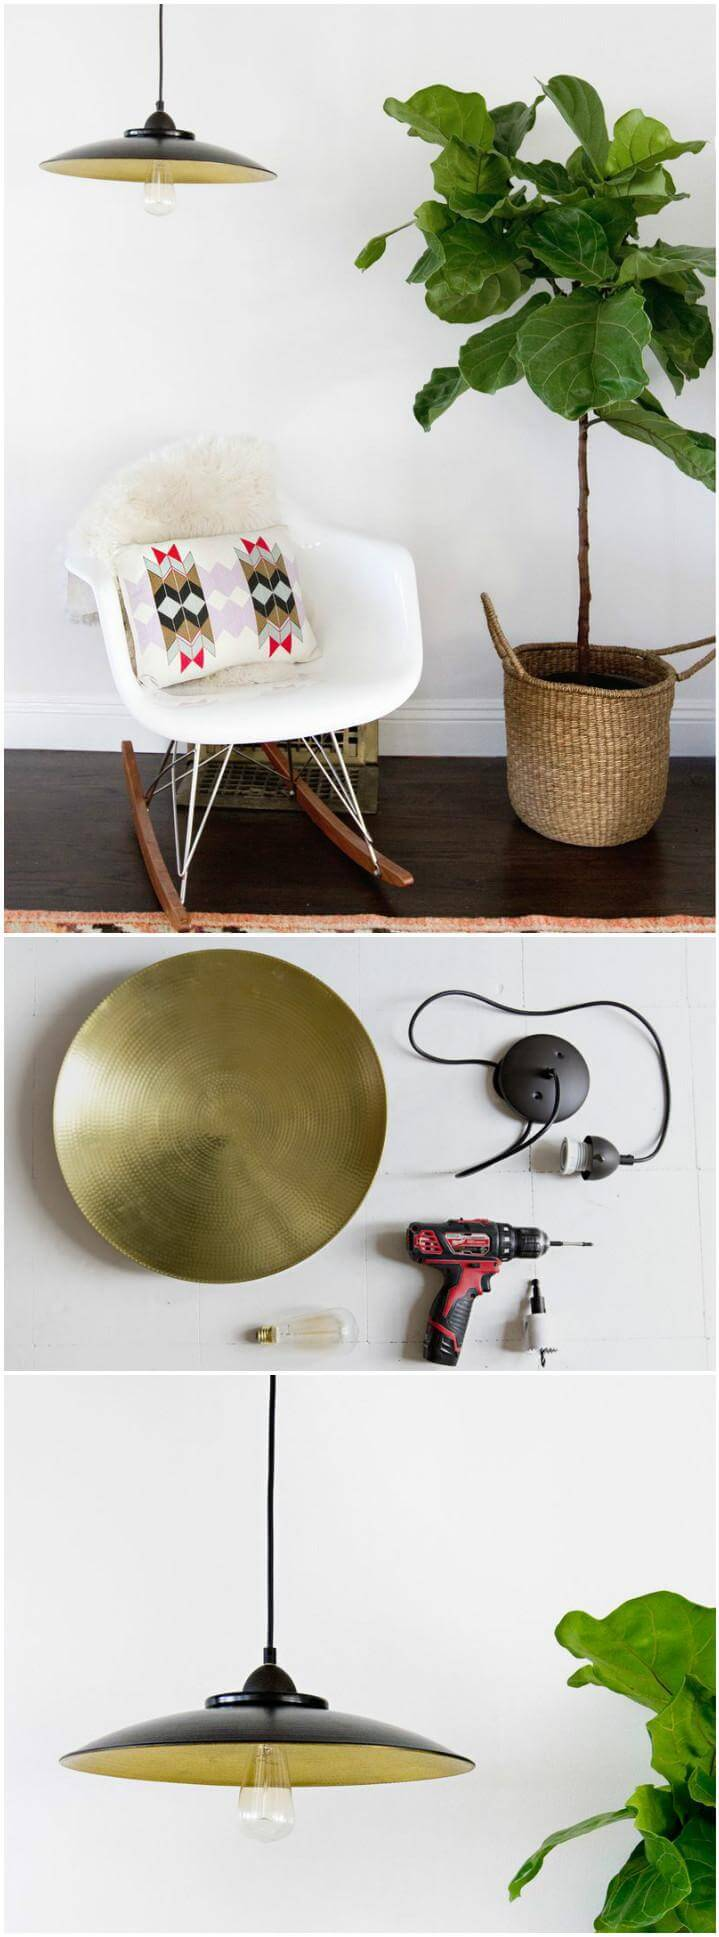 quick and creative pendant light lamp